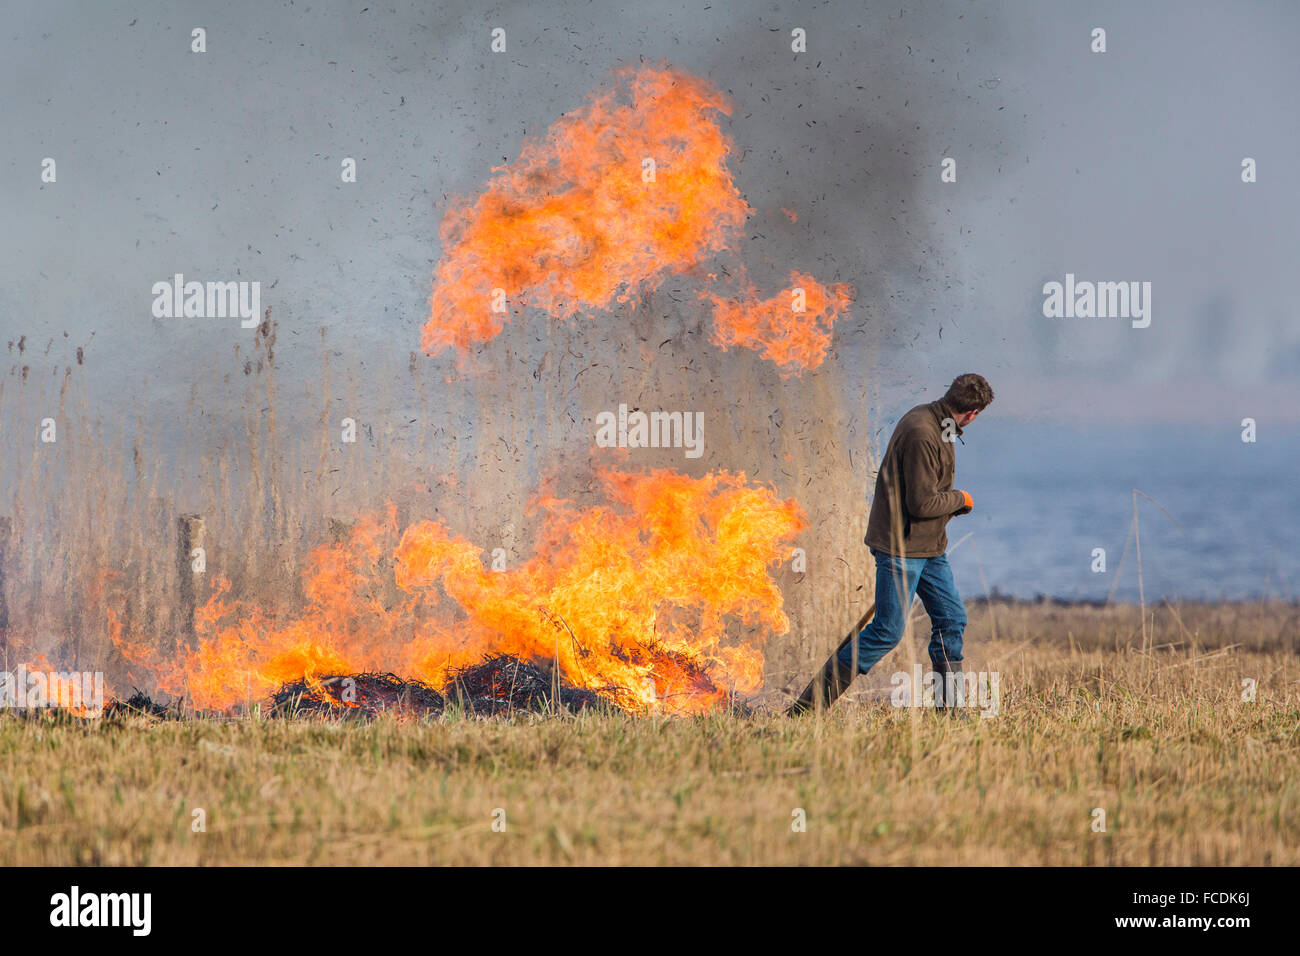 Netherlands, Akersloot, Hempolder Nature Reserve. Wetland. Breeding ground for waterfowl. Burning of dry reed supervisors. - Stock Image